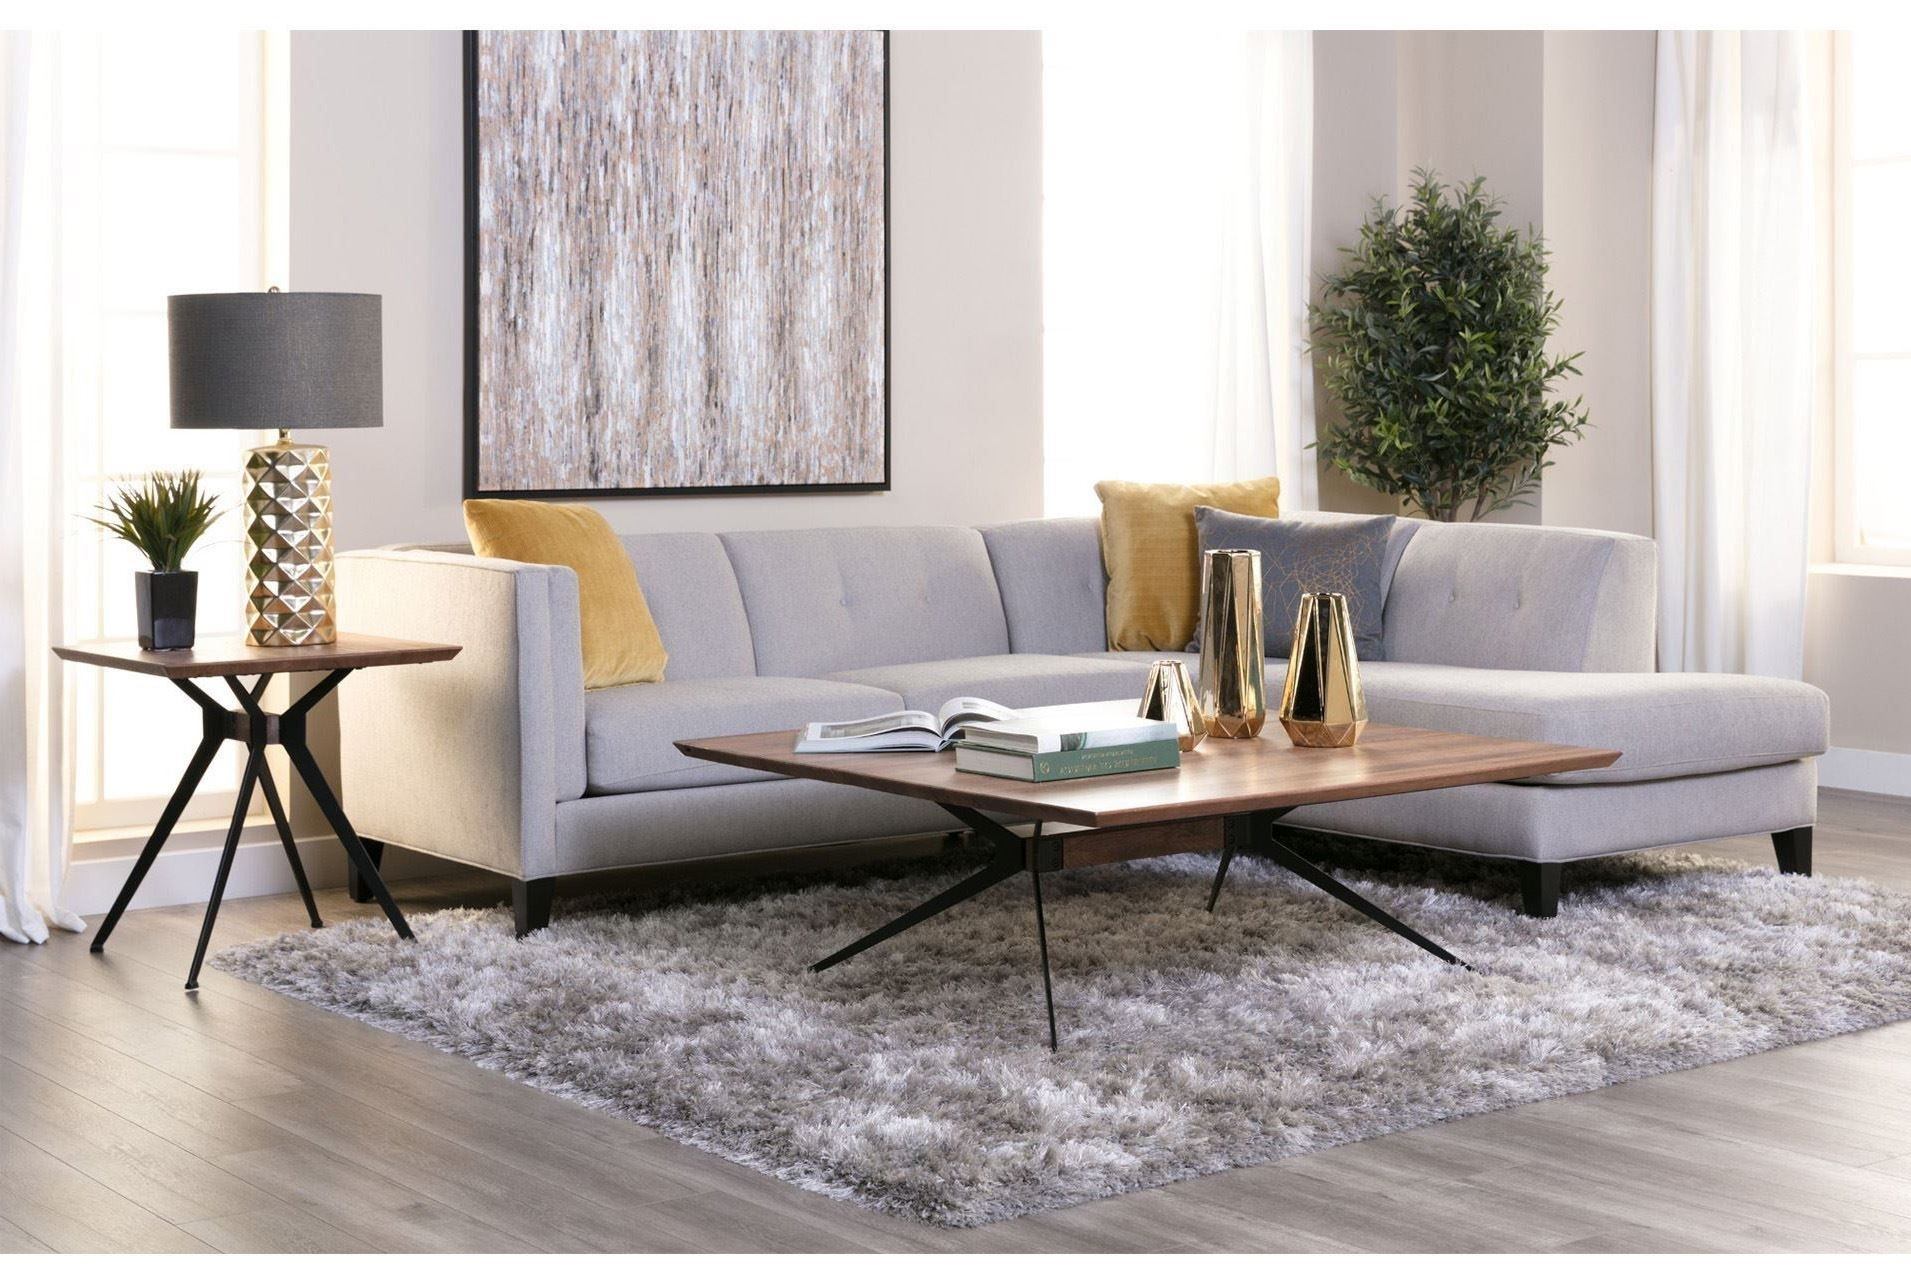 Avery 2 Piece Sectional W/raf Armless Chaise, Grey, Sofas | Mid Pertaining To Aquarius Light Grey 2 Piece Sectionals With Raf Chaise (View 21 of 25)